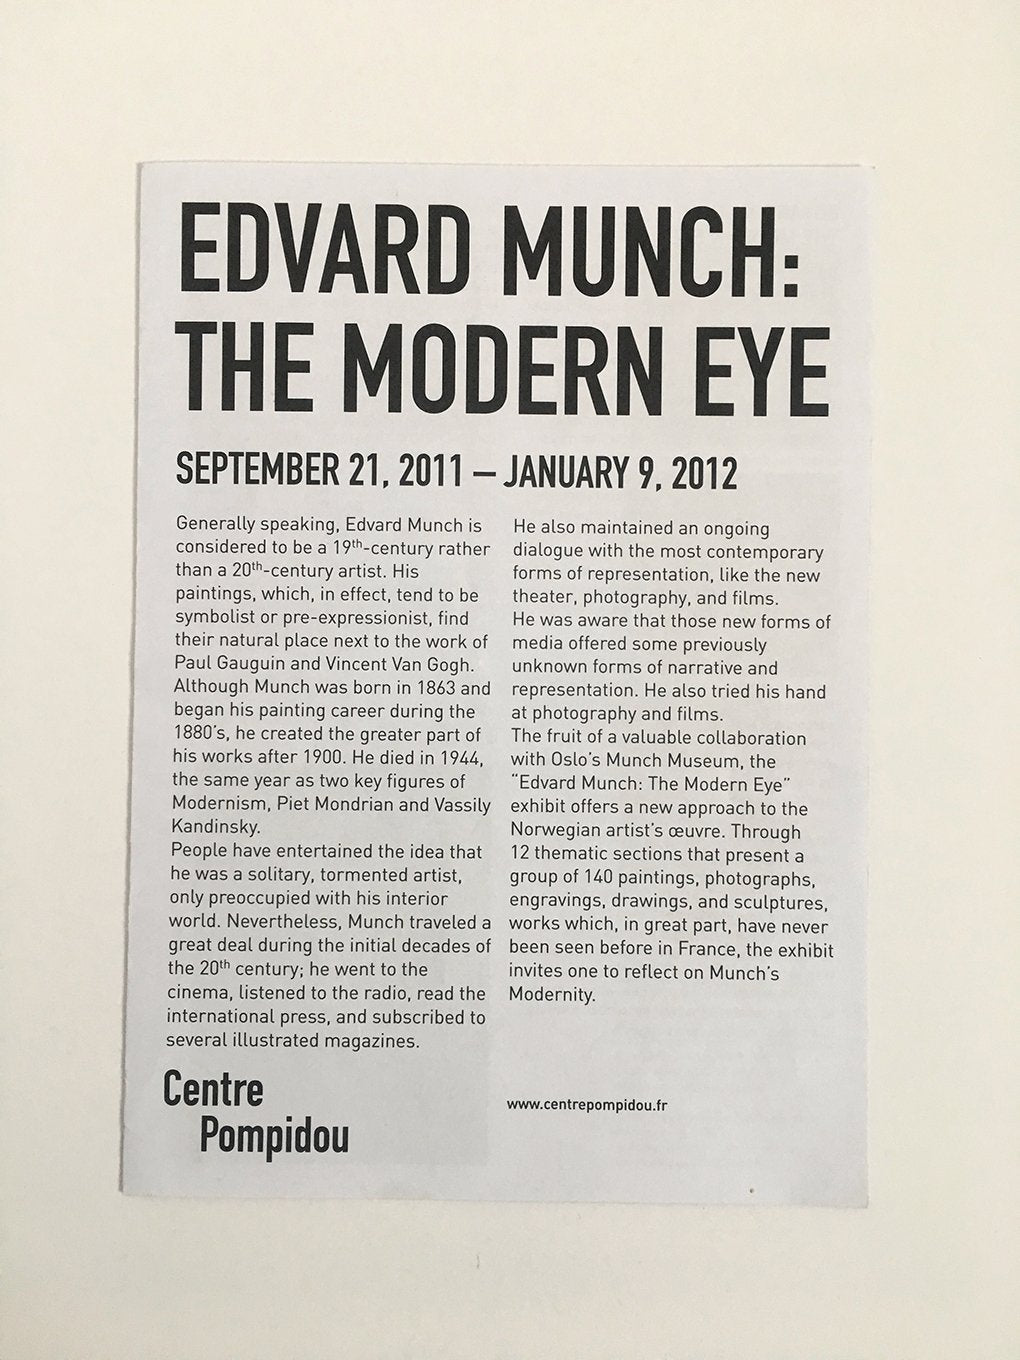 Edvard Munch: 'The Modern Eye' at the Pompidou Centre, Paris - Exhibition guide